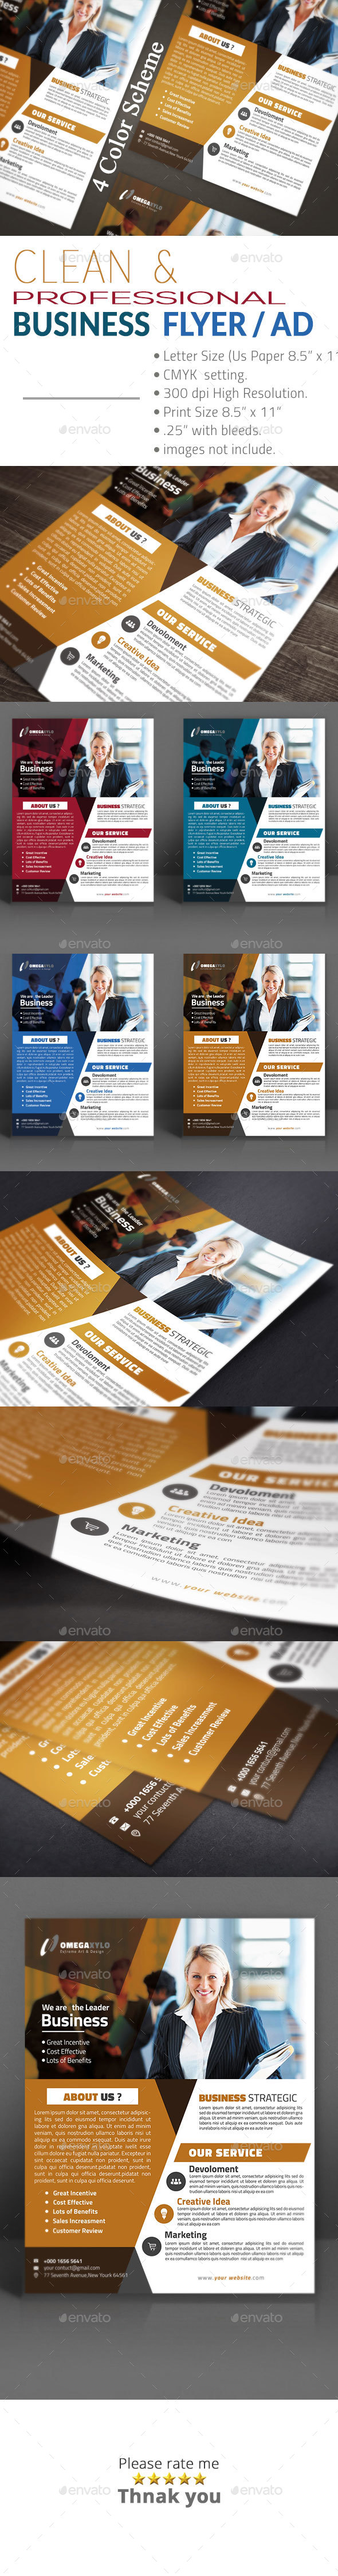 Corporate Business Flyer / Ad - Corporate Flyers